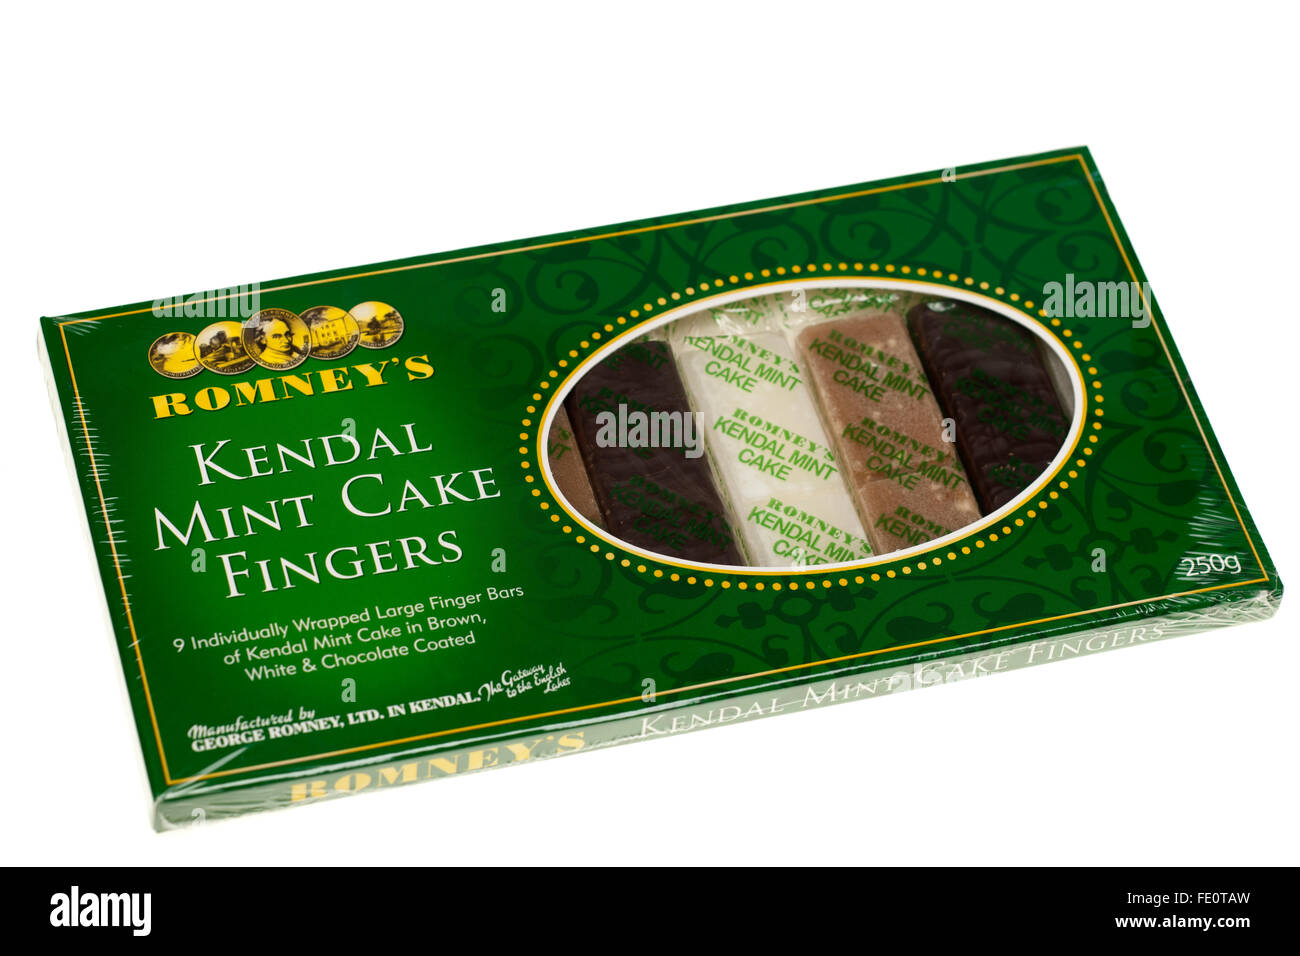 Box of individually wrapped Romneys Kendall mint cake fingers in white, brown and chocolate coated - Stock Image